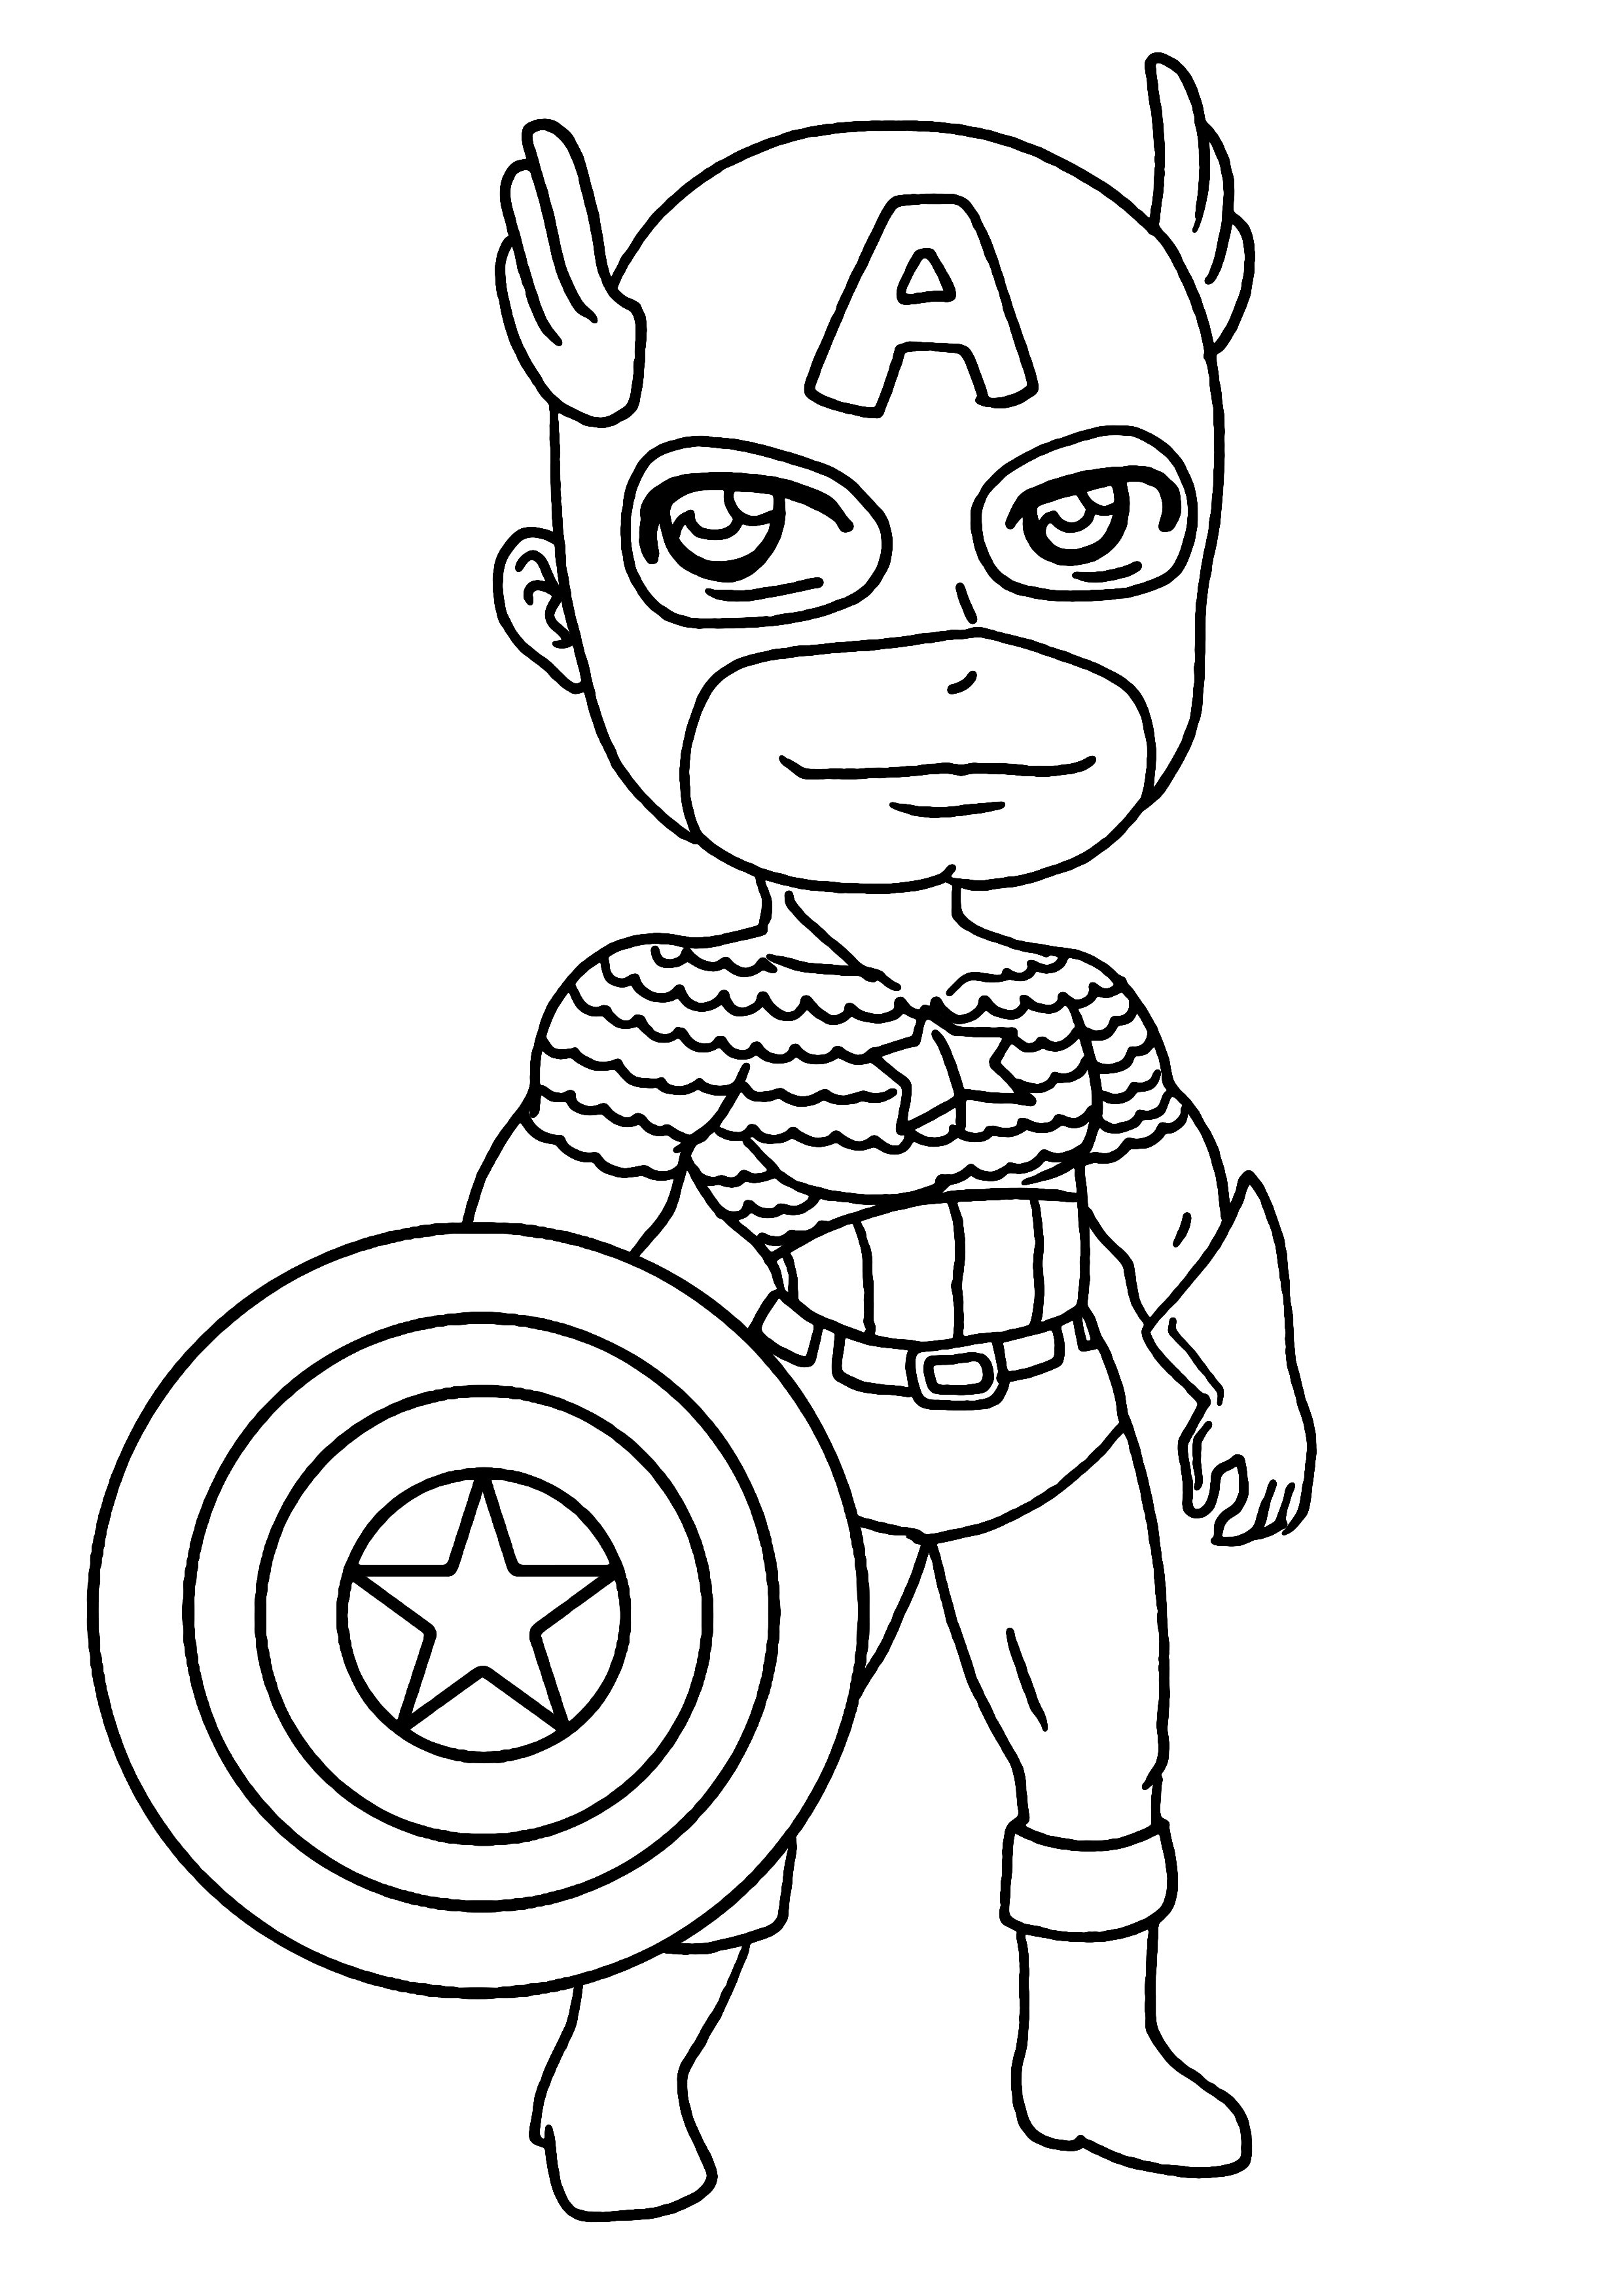 Captain America 76584 Superheroes Printable Coloring Pages